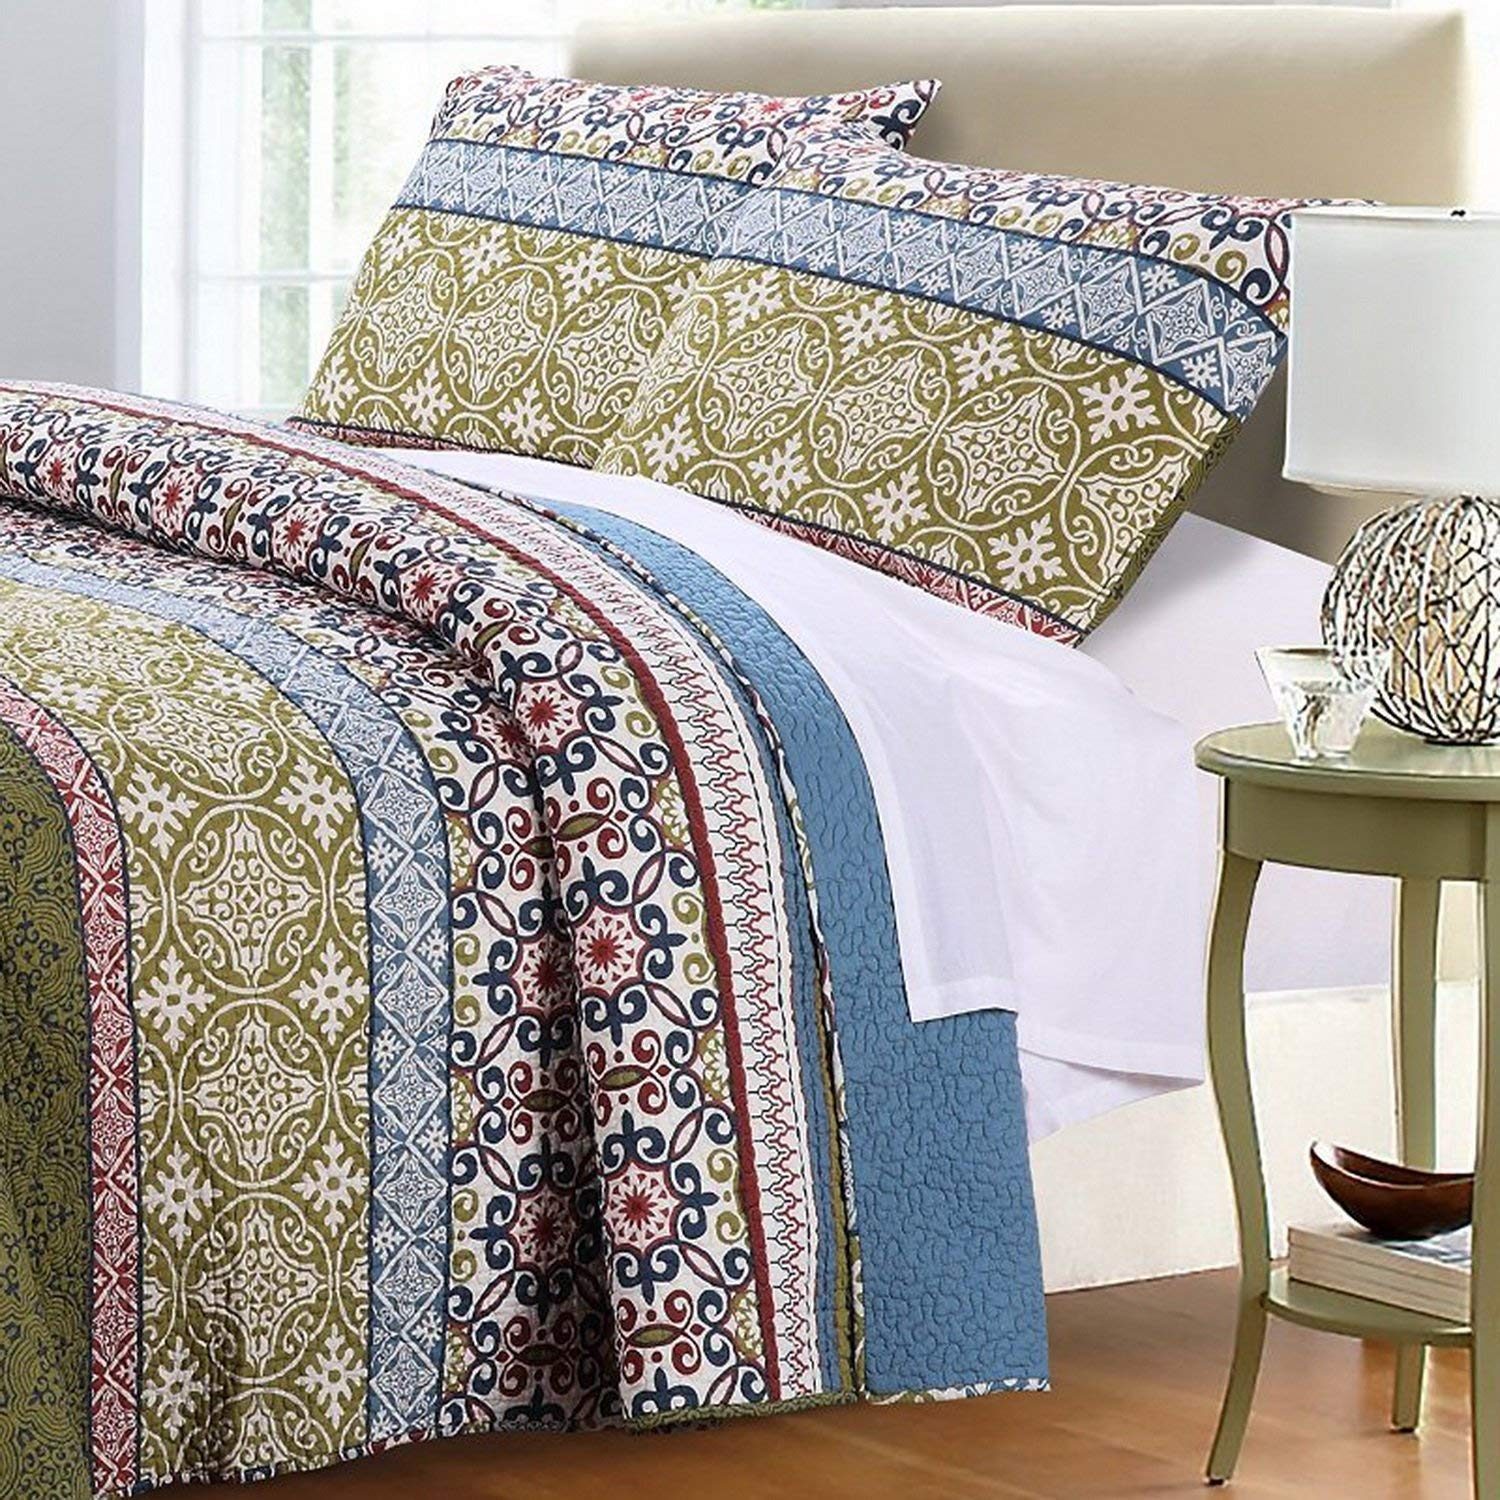 Boho Bohemian Quilt Set With Shams Geometric Pattern Vintage Story Cushion Shabby Patchwork 60x60cm 2 Mandala Blue Green 100 Cotton Luxury Reversible 3 Piece Print King Size Bedding Includes